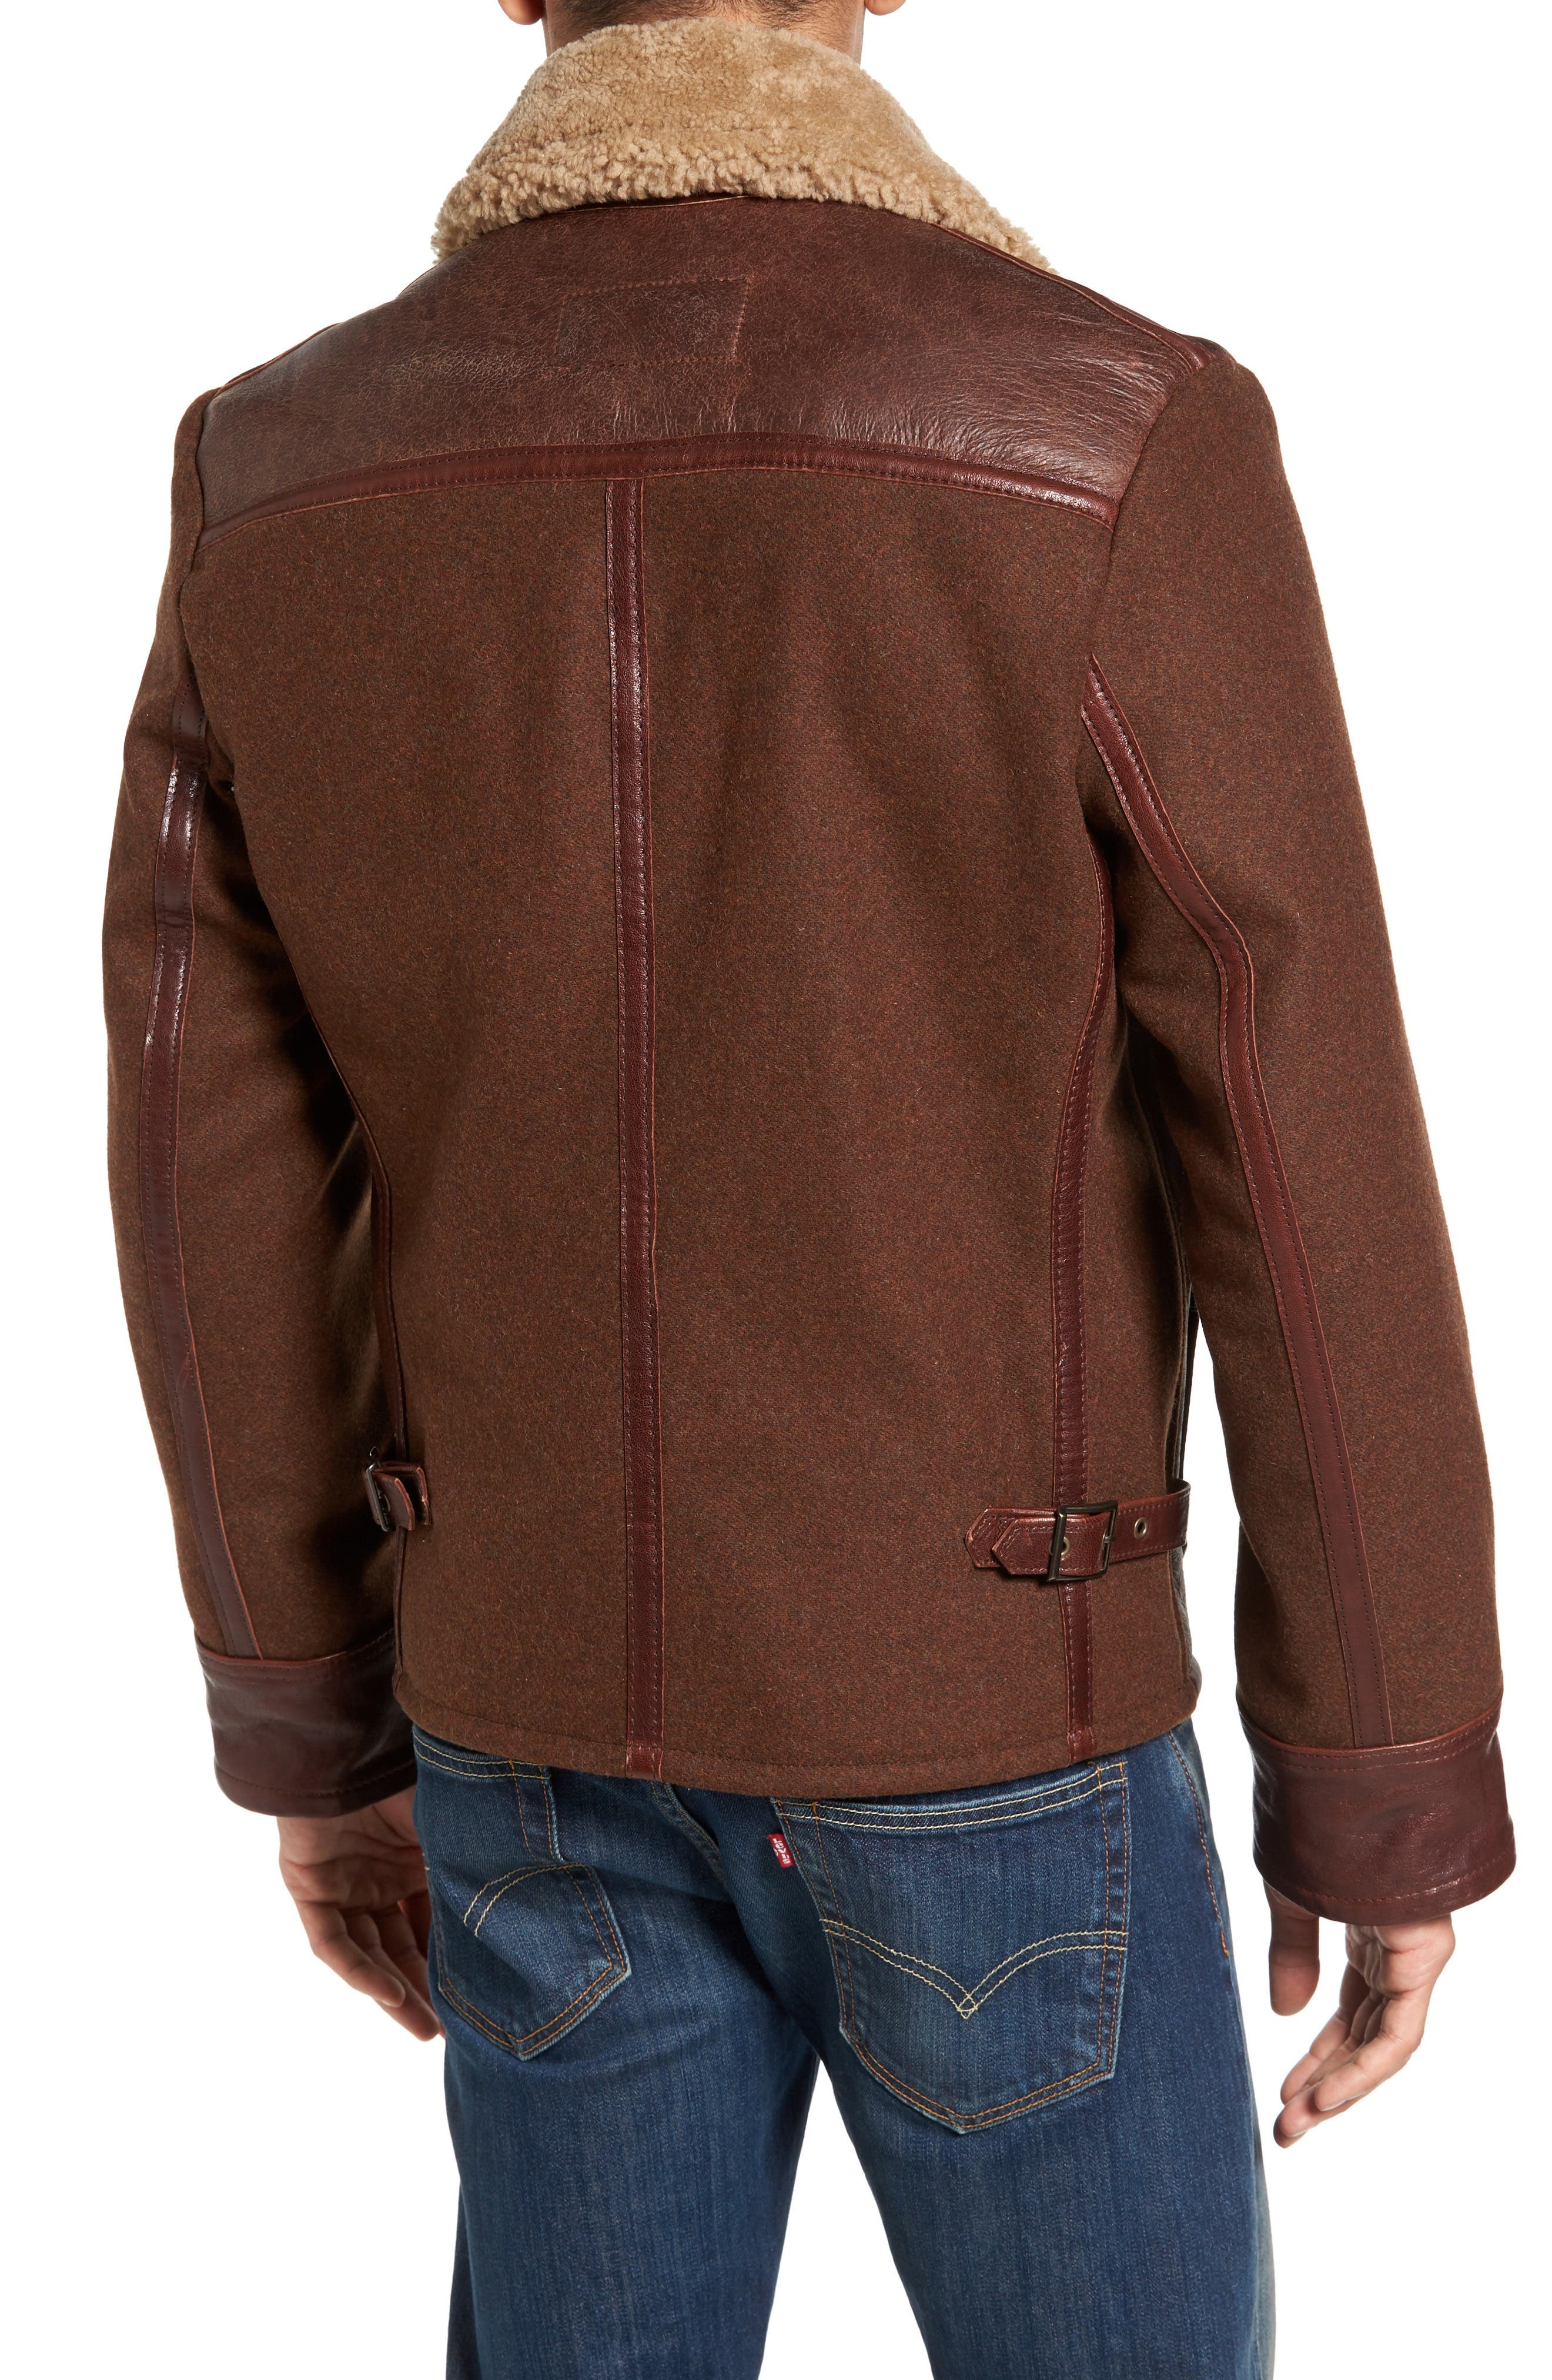 Mixed Media Flight Jacket with Genuine Shearling Collar & Lining,                             Alternate thumbnail 2, color,                             200